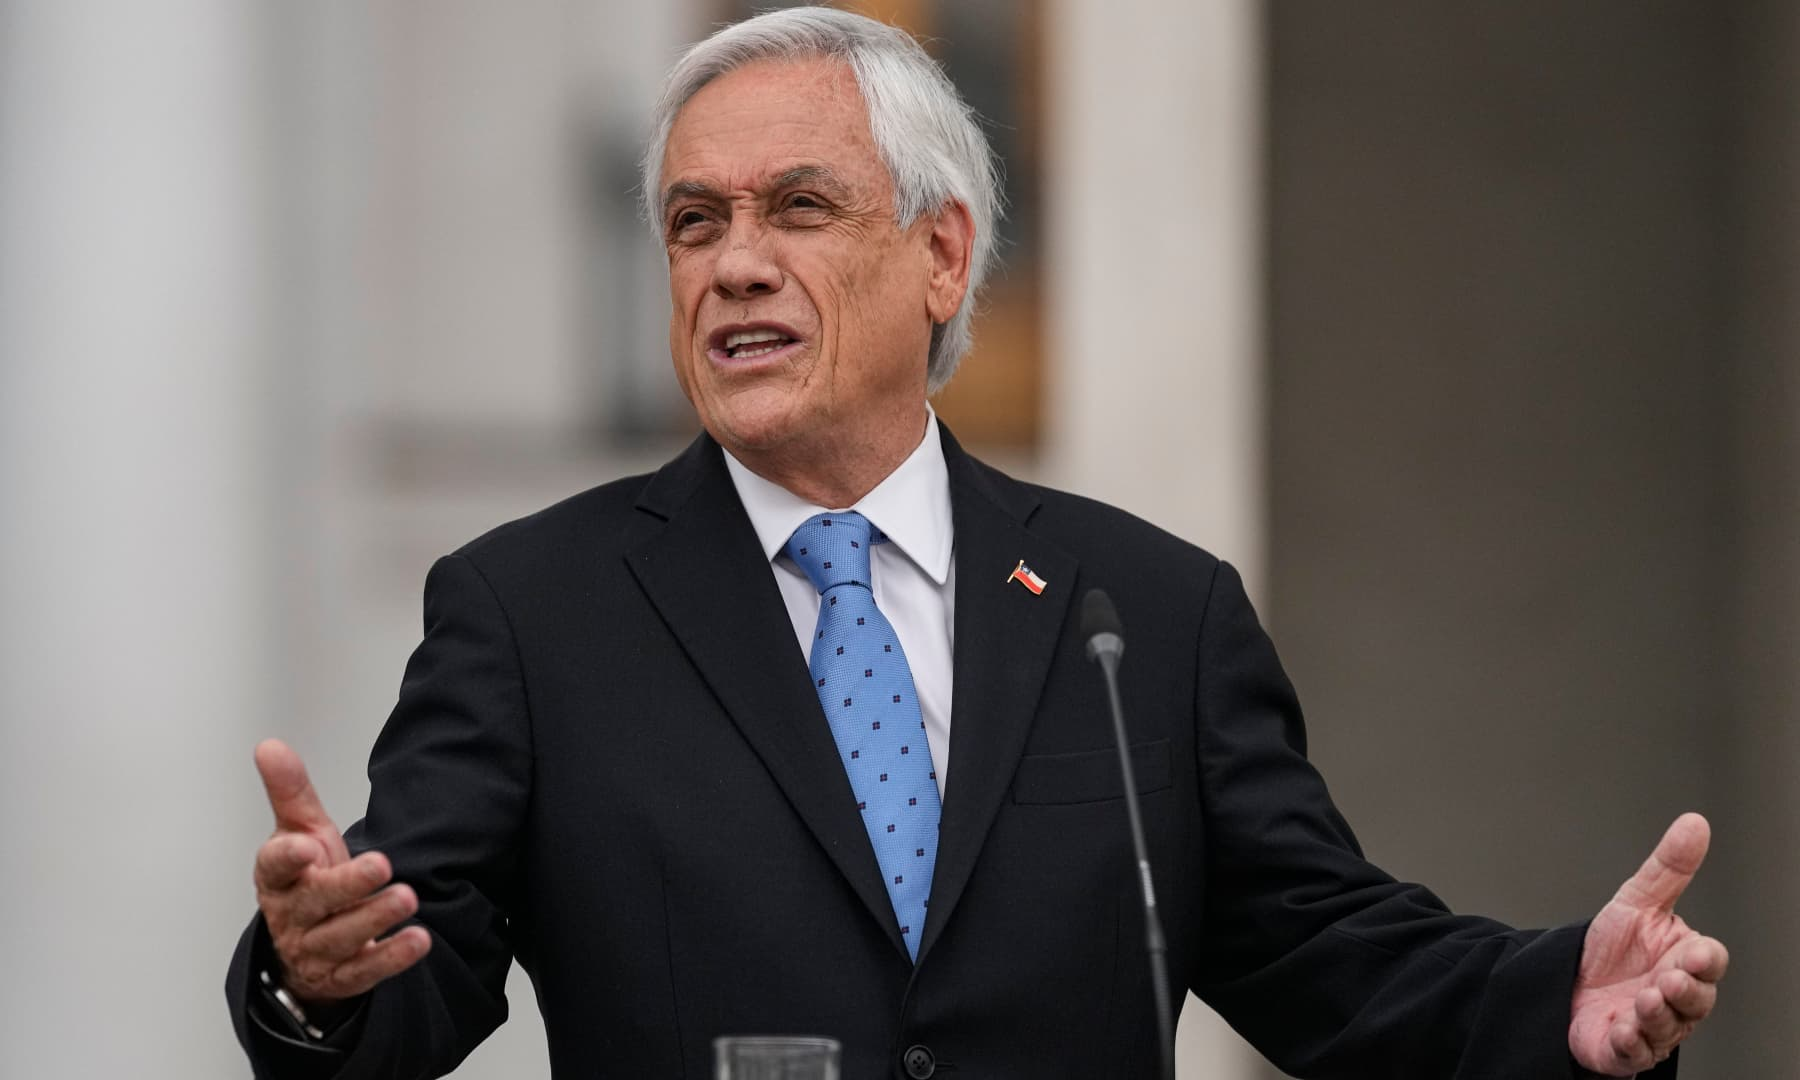 Chilean President Sebastian Piñera addresses a press conference at La Moneda presidential palace in Santiago, Chile on October 4, 2021. — AP